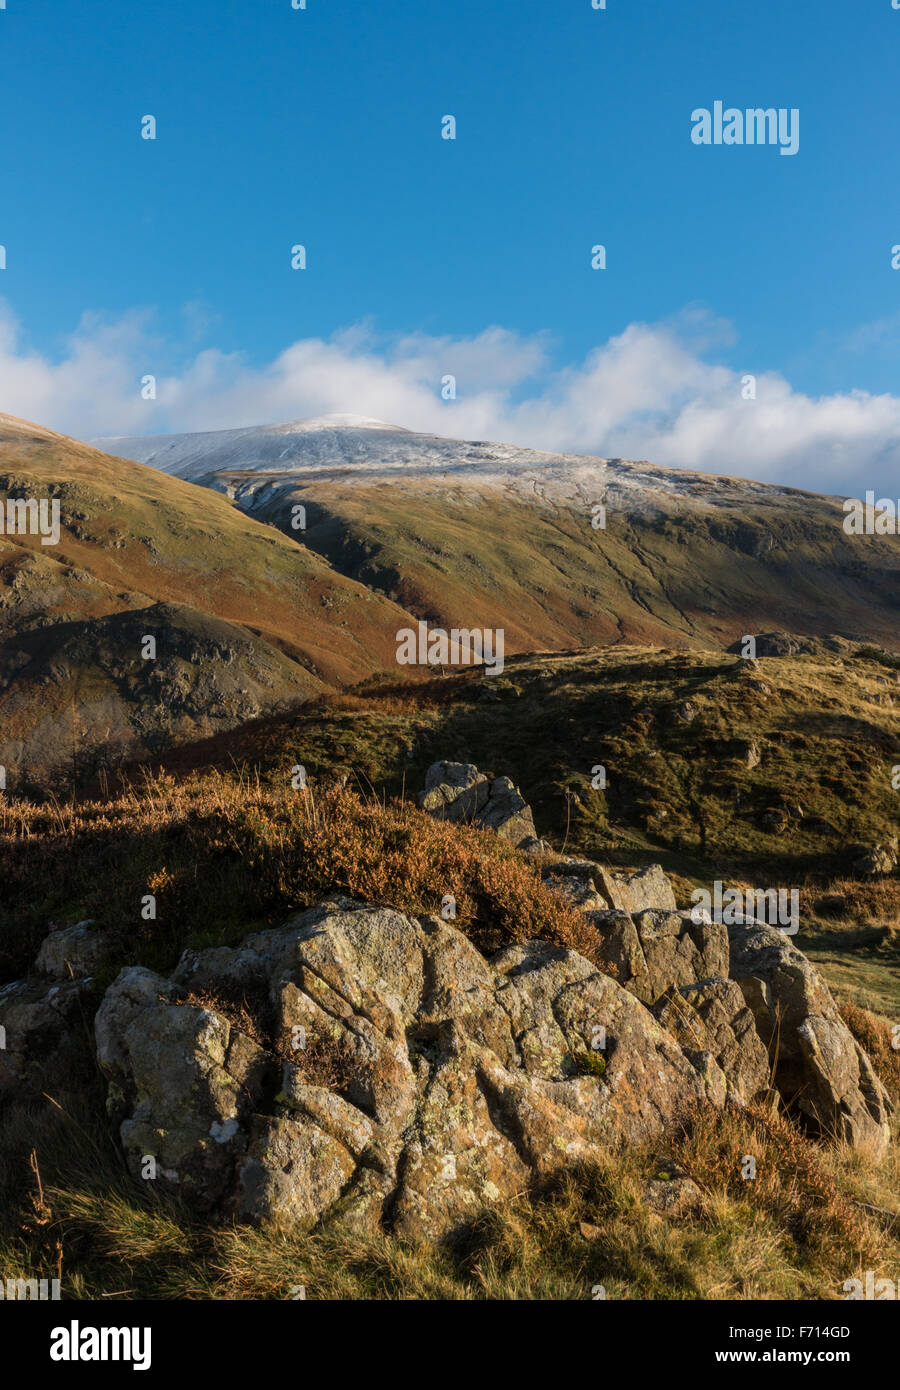 snow capped watson's dodd in the distance which forms part of the helvellyn range - Stock Image